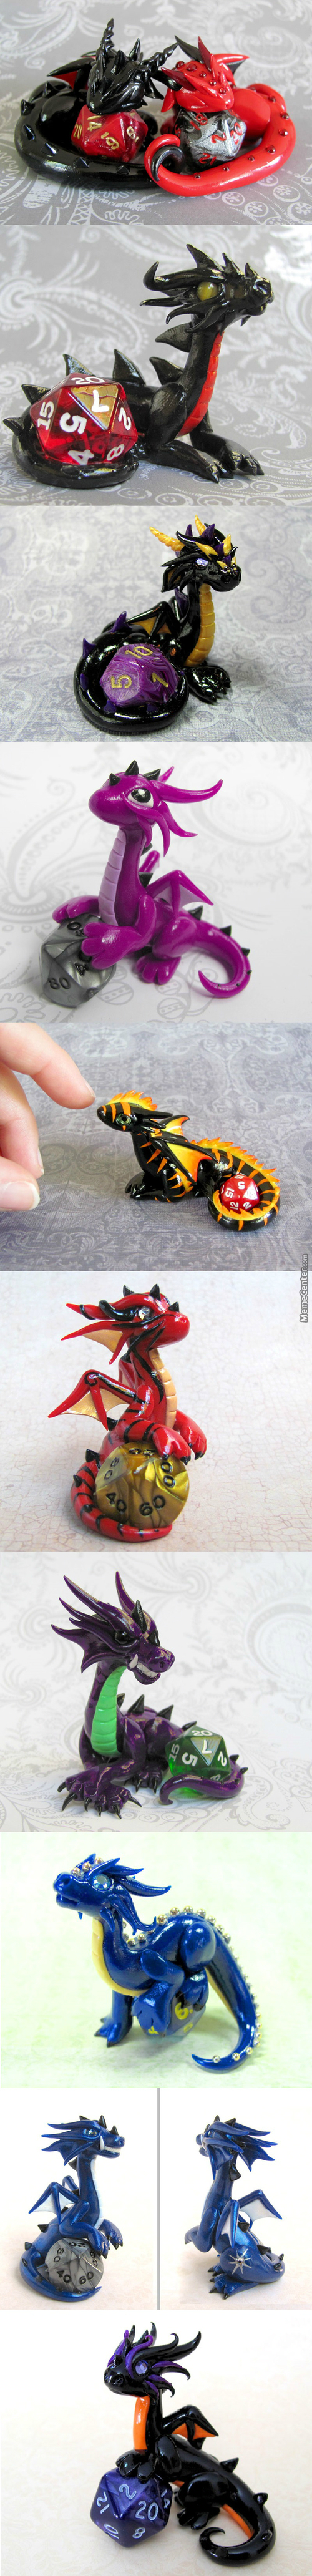 Dices & Dragons